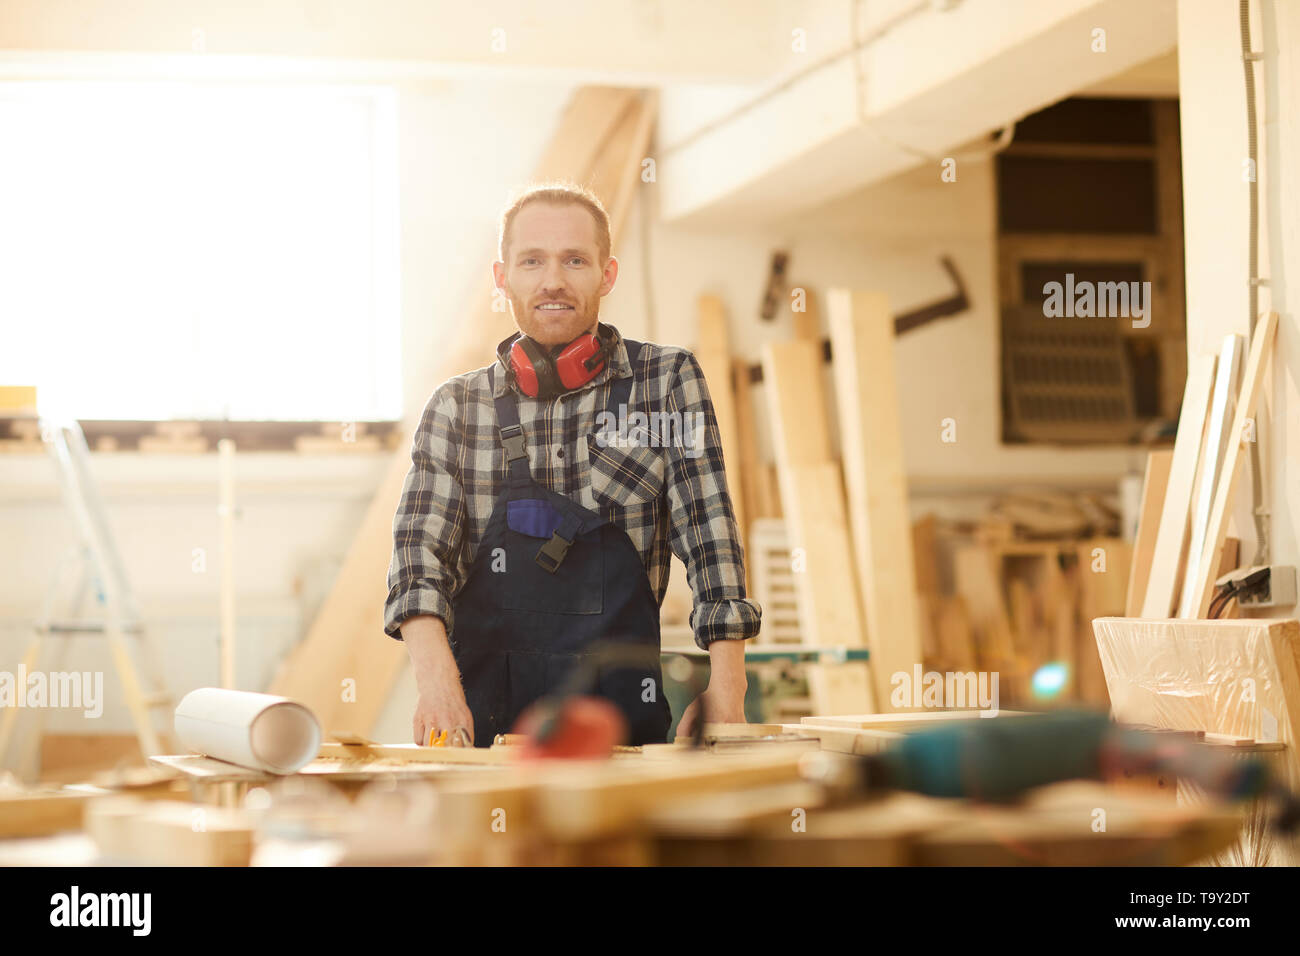 Portrait of red haired carpenter smiling at camera while working in joinery lit by sunlight, copy space - Stock Image